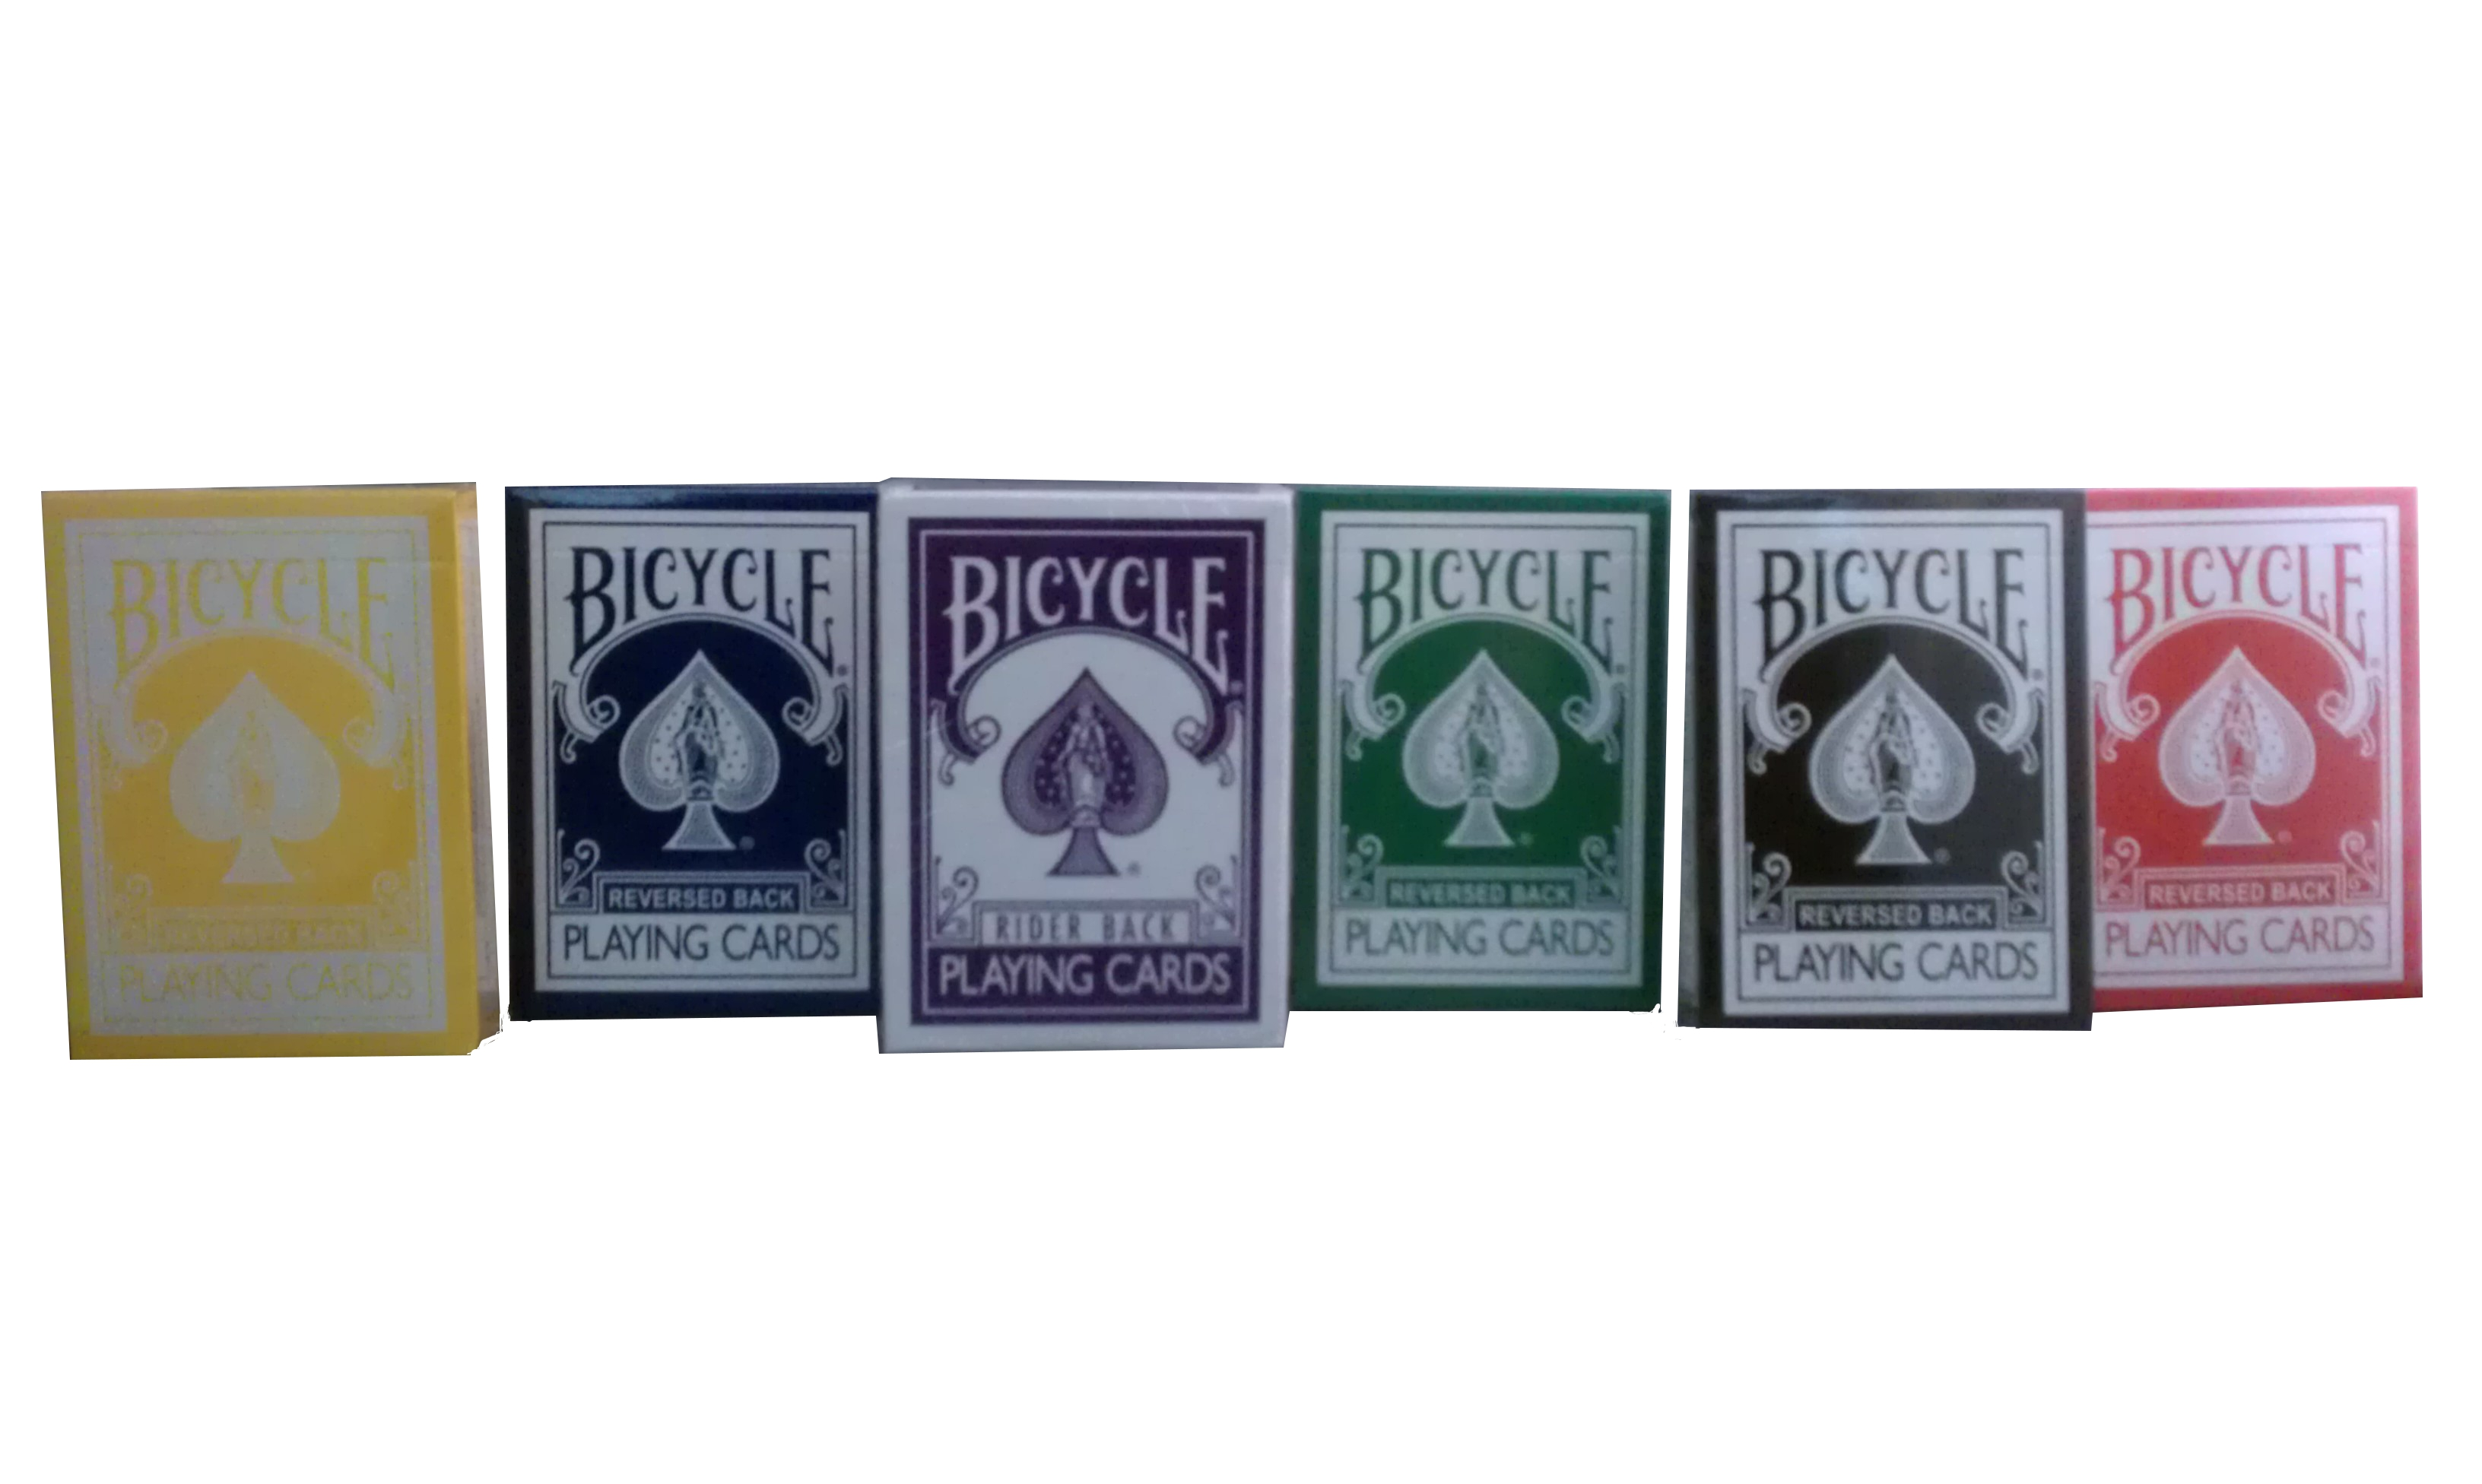 Bicycle Red, Black, Yellow, Blue, Purple, and Green Decks - Gaff Cards From Magic Makers Bicycle Red, Black, Yellow, Blue, Purple, and Green Decks - Gaff Cards From Magic Makers